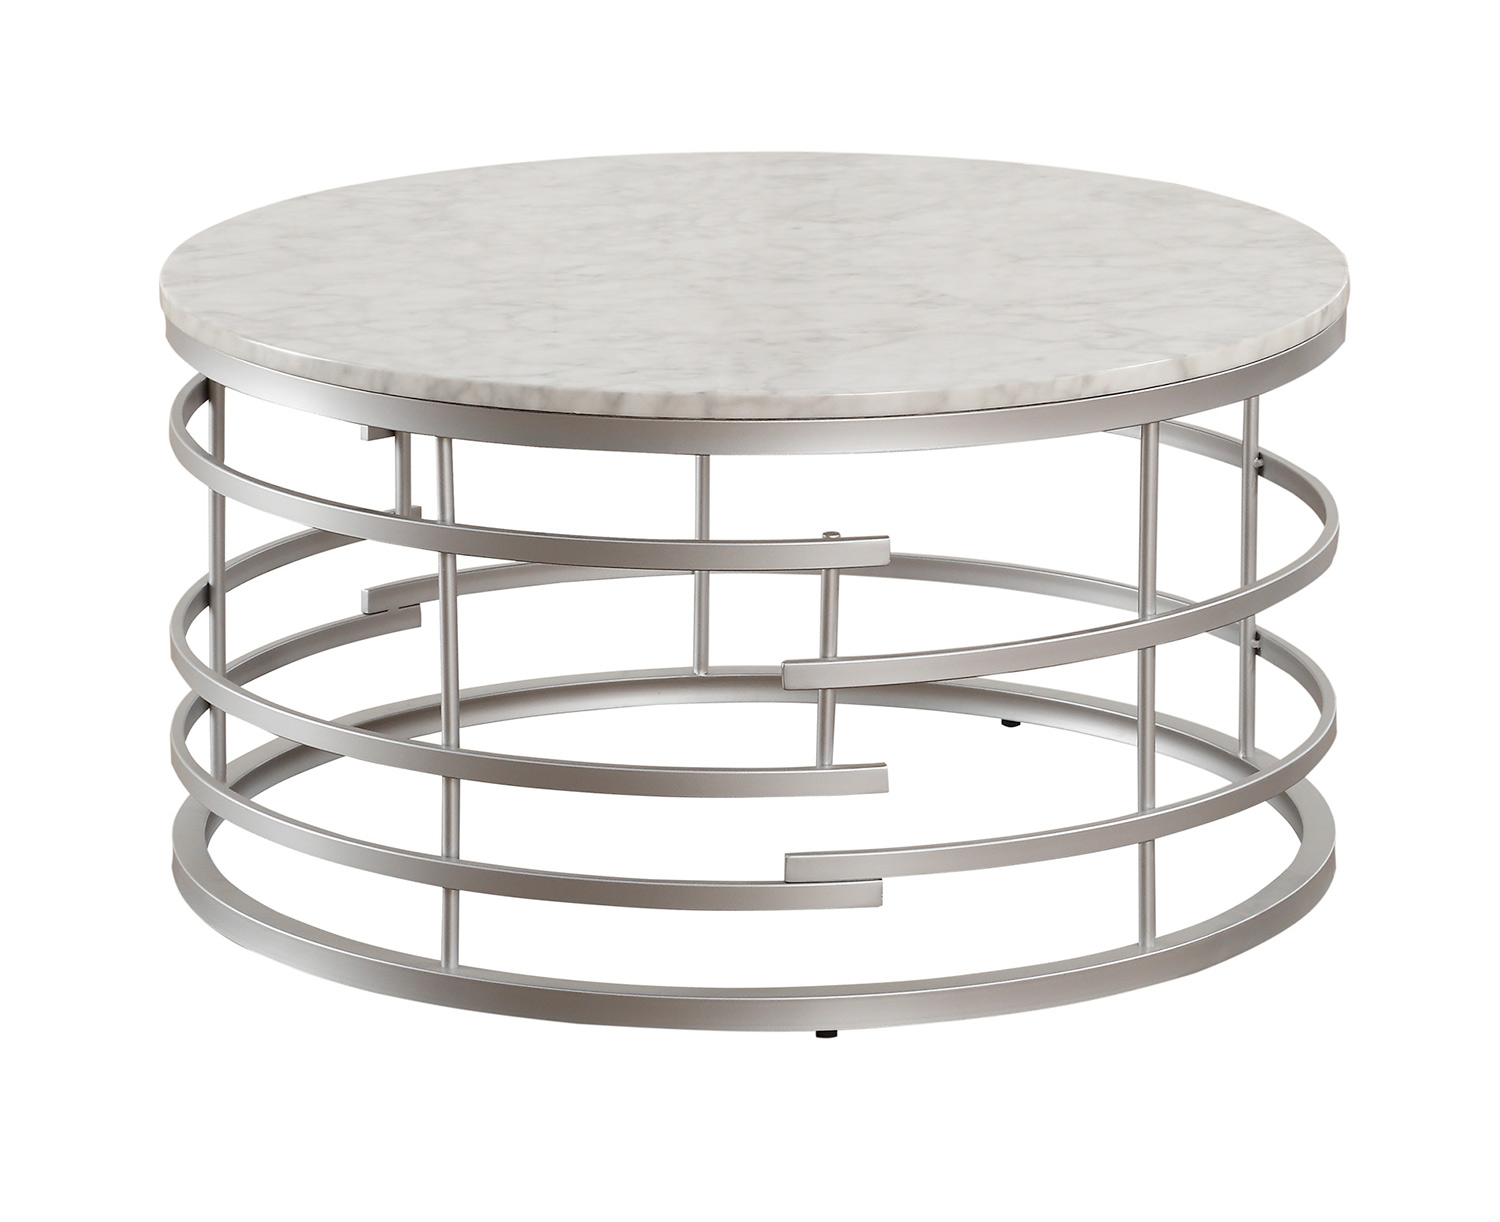 Homelegance Brassica Round Cocktail/Coffee Table with Faux Marble Top - Silver - White Marble Top